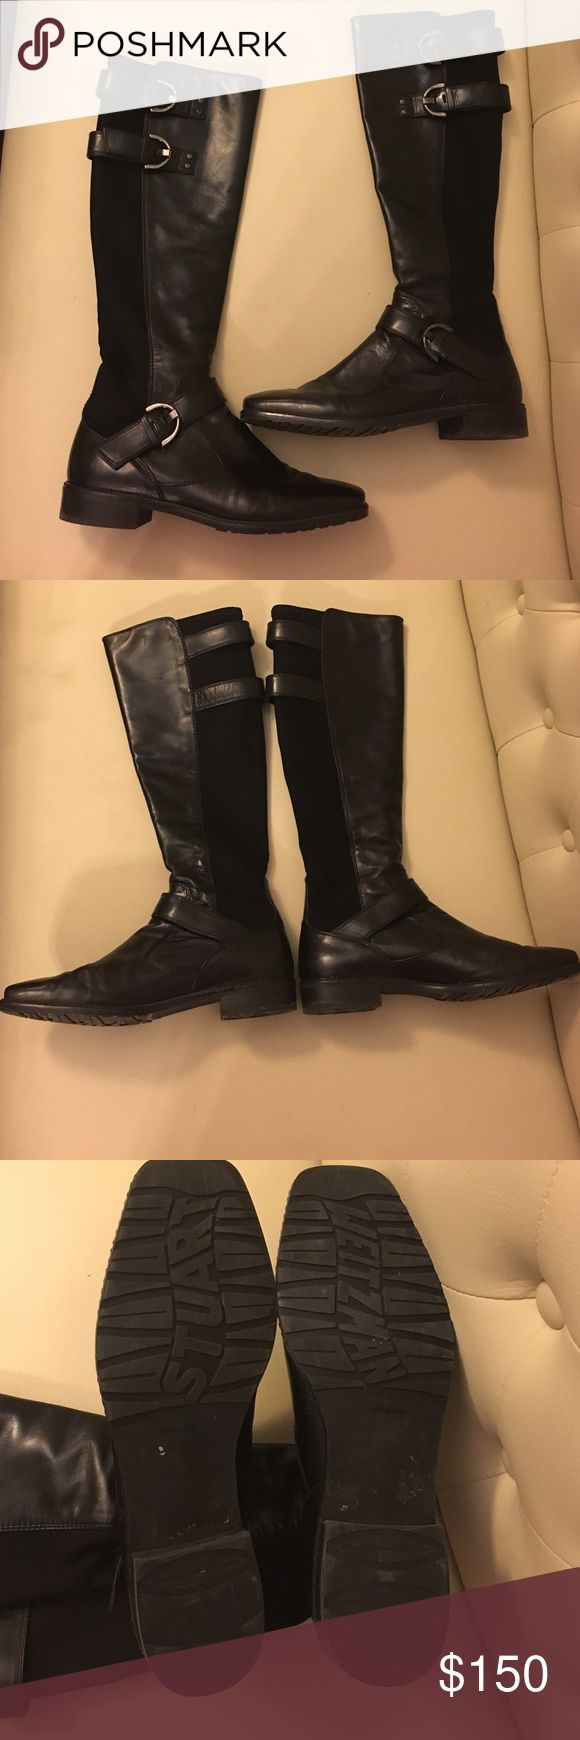 stuart weitzman 5050 boots with accent buckles stuart weitzman 5050 boots with accent buckles. The 5050 has a uniquely stylish design of micro stretch and nappa leather Shoes Combat & Moto Boots